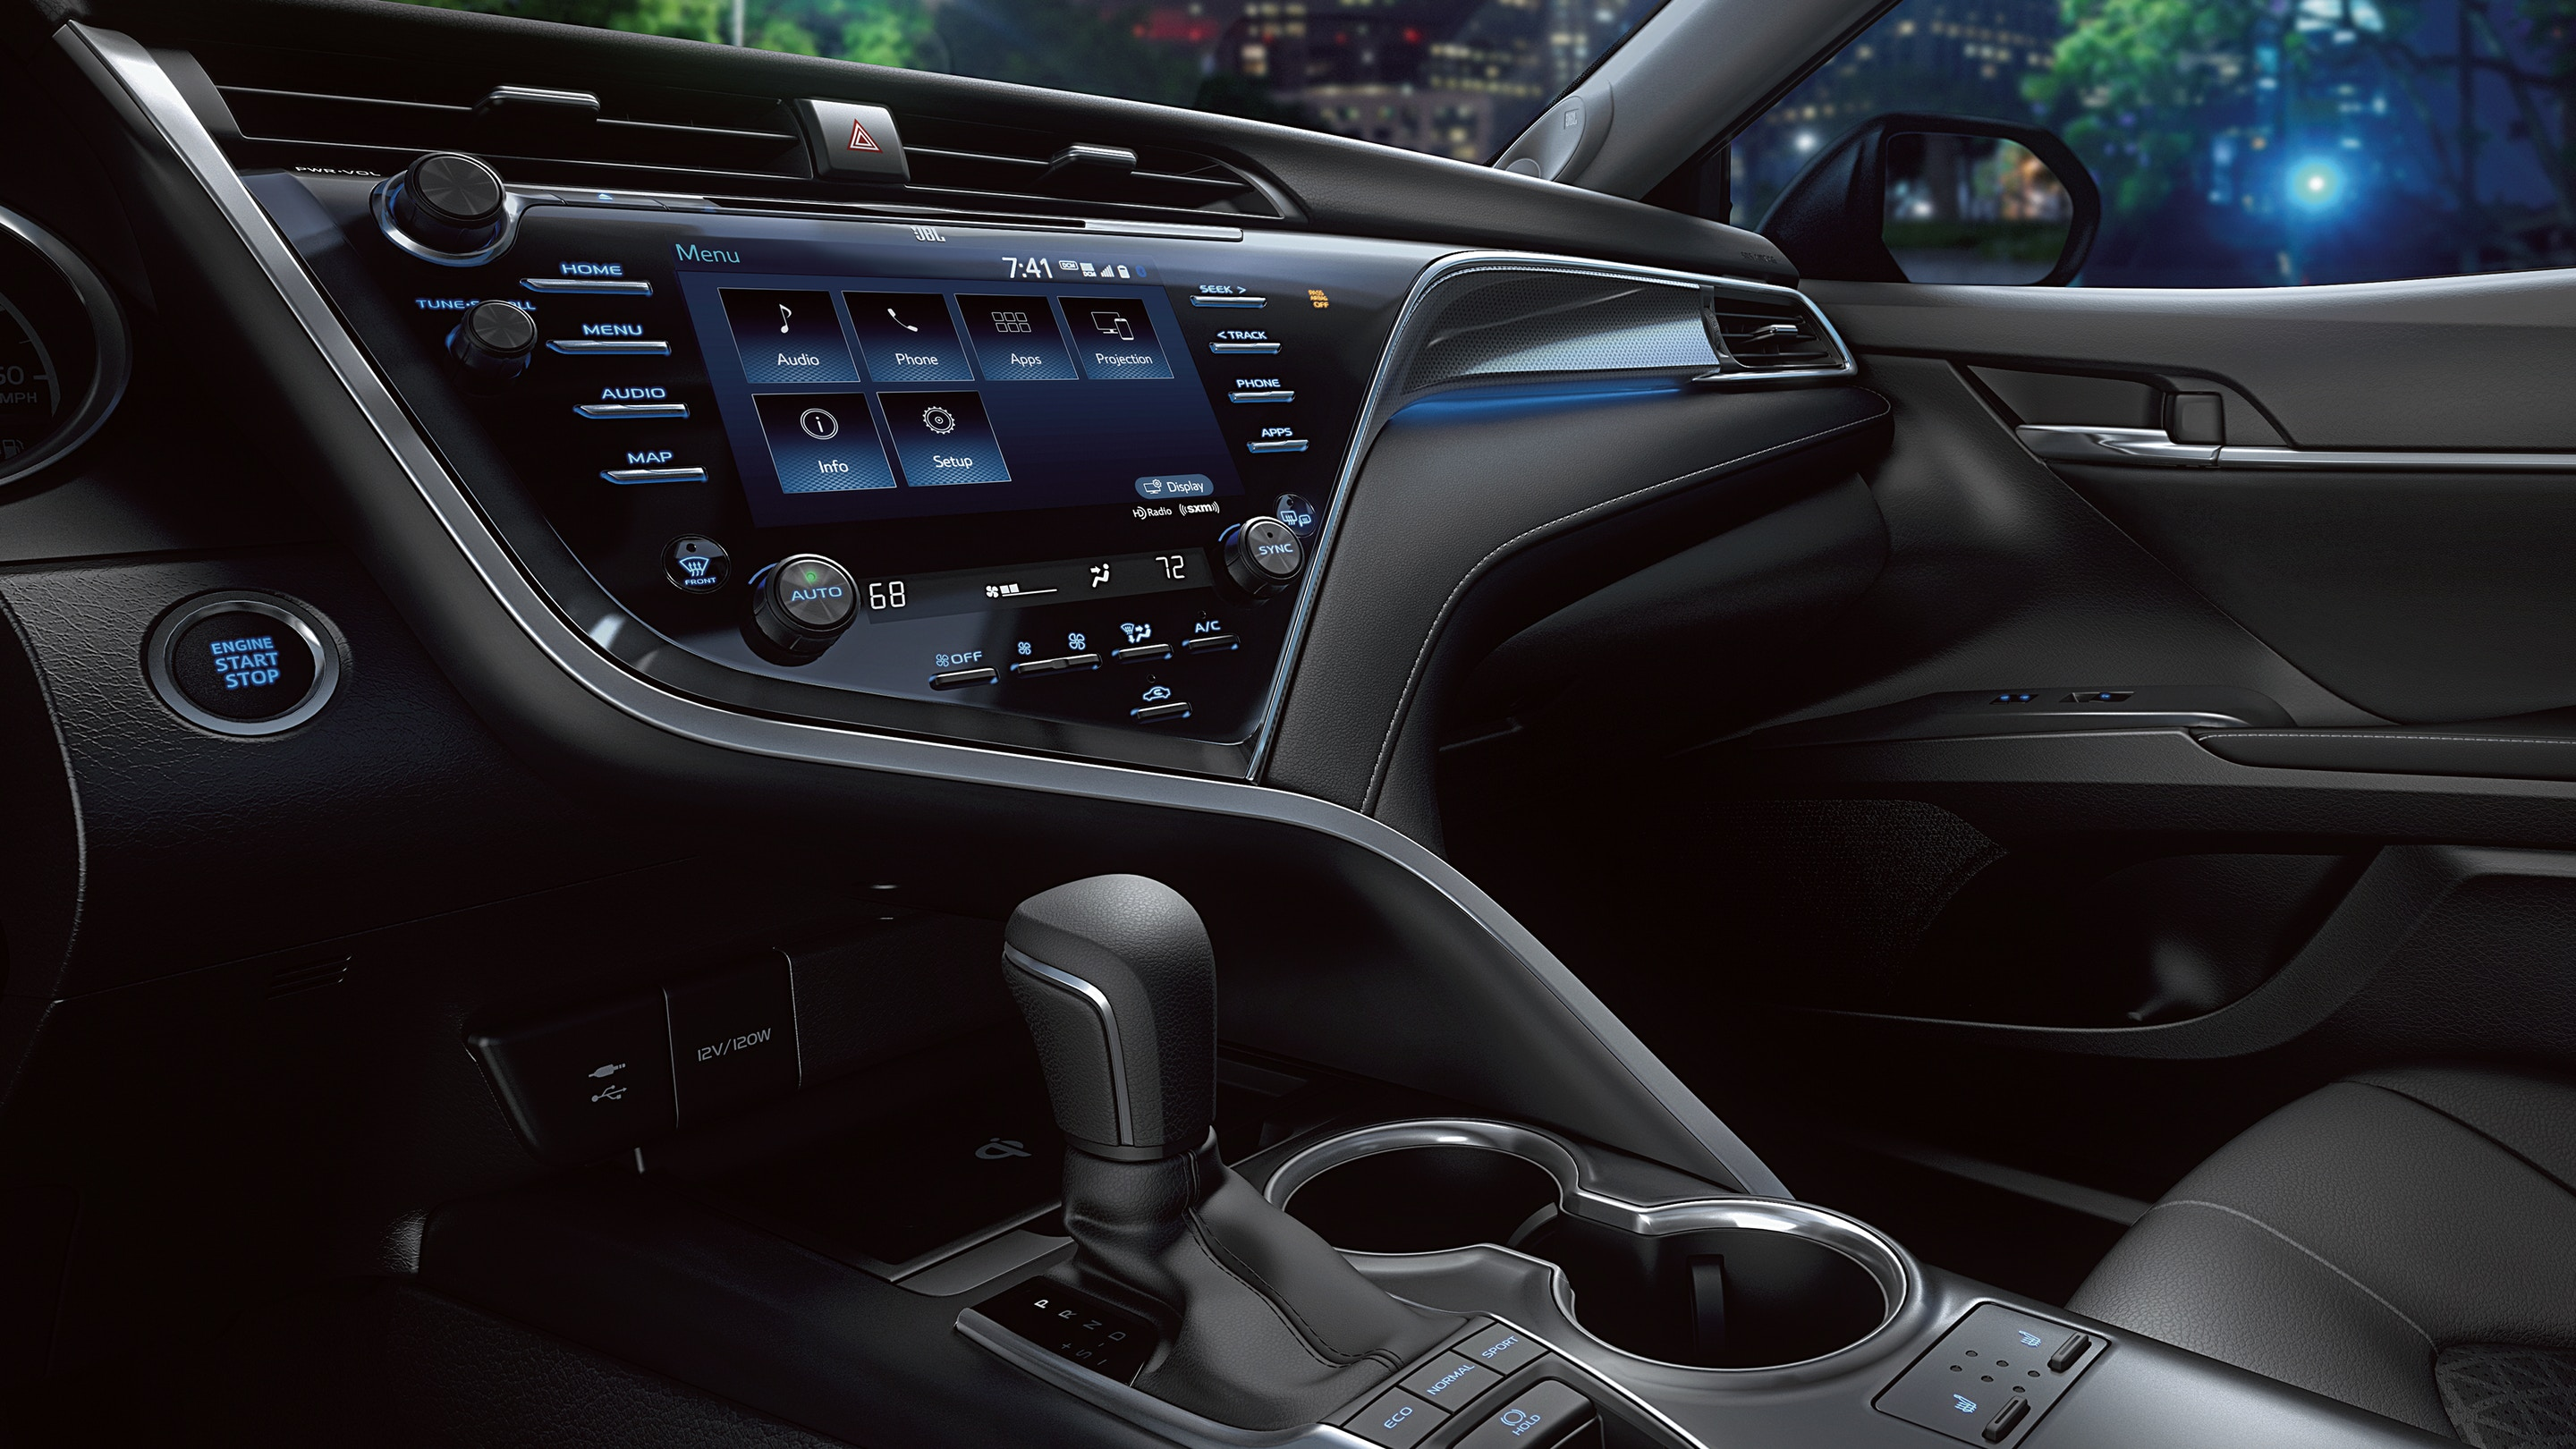 2019 Toyota Camry Center Console